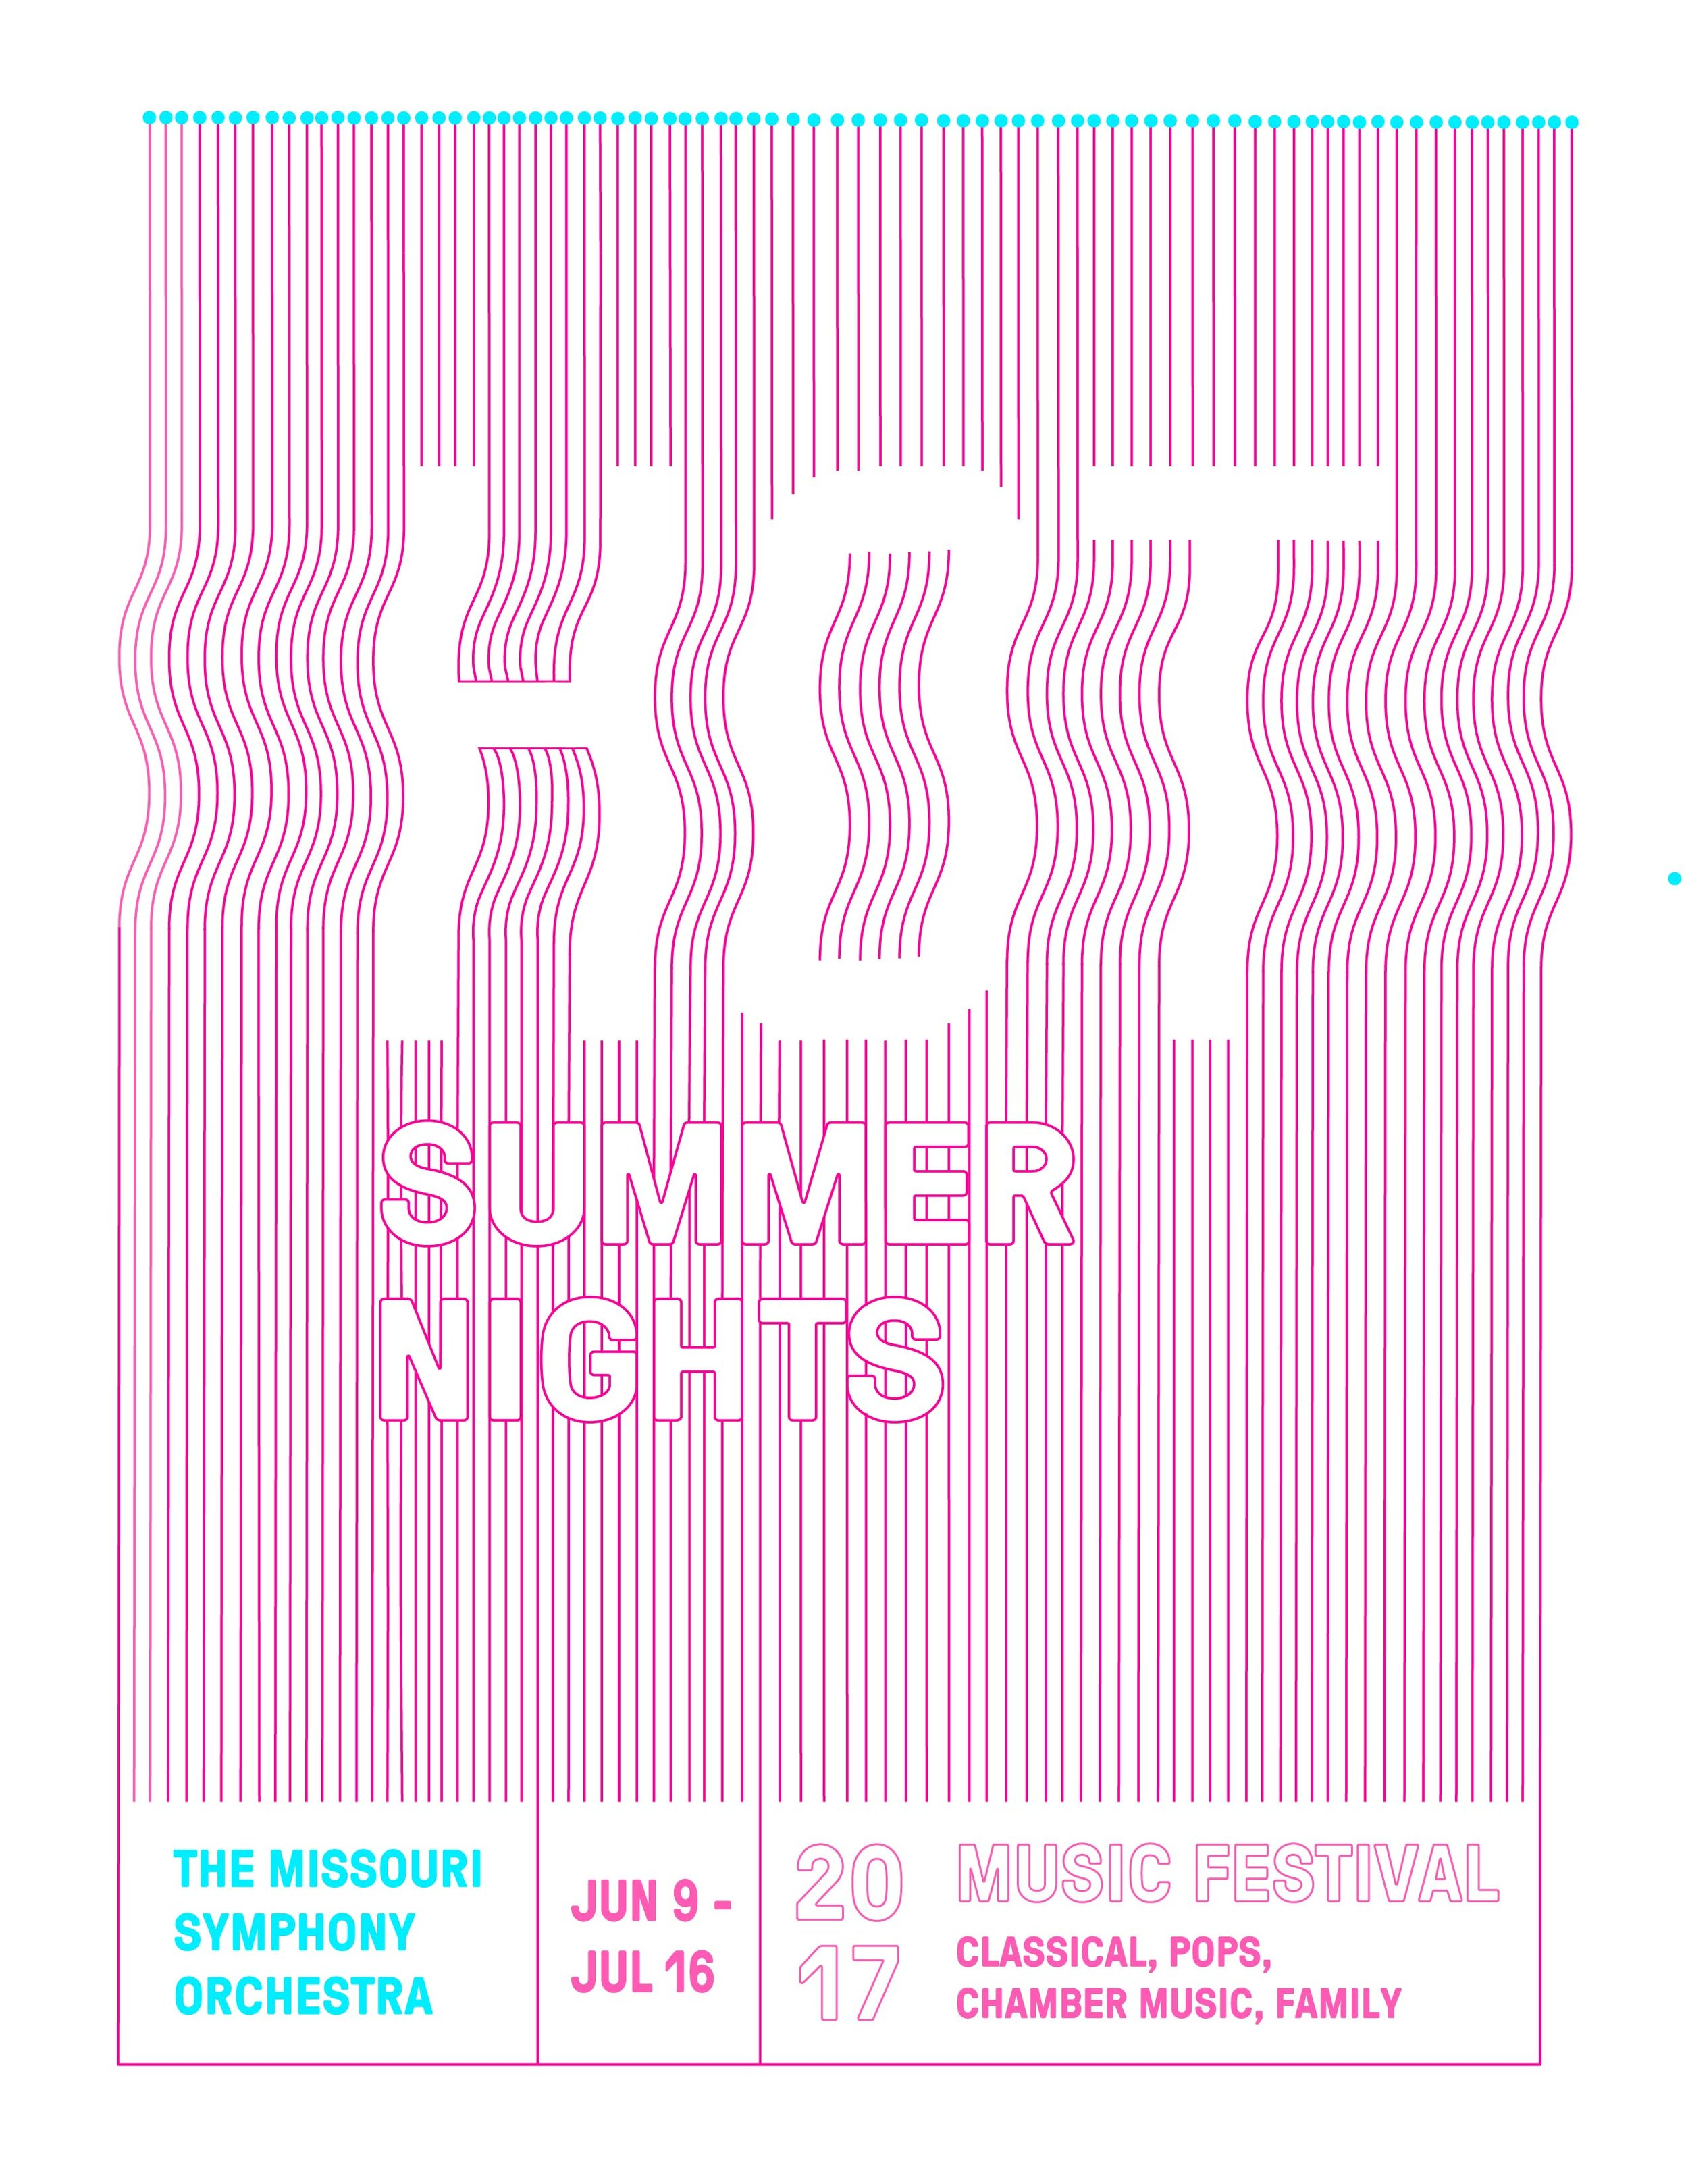 Promotional Poster Design for 'Hot Summer Nights' for  The Missouri Symphony Orchestra